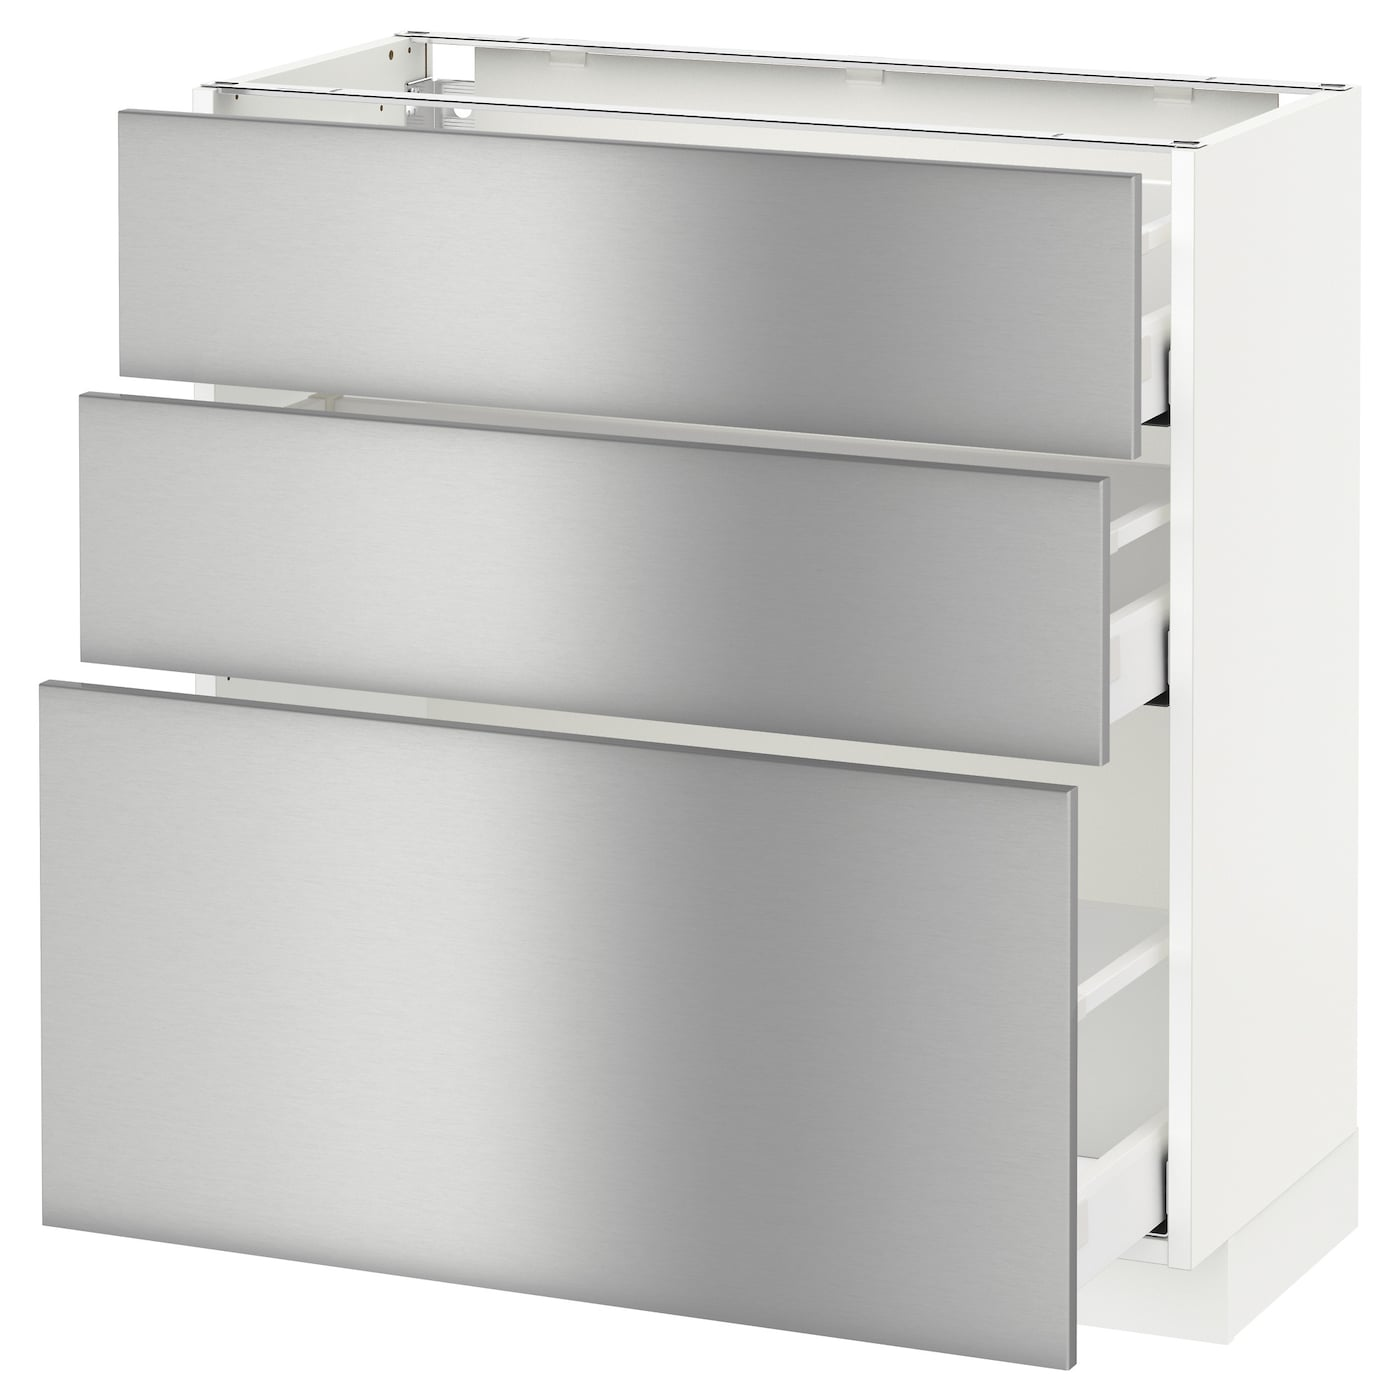 Metod maximera base cabinet with 3 drawers white grevsta for Kitchen cabinets and drawers